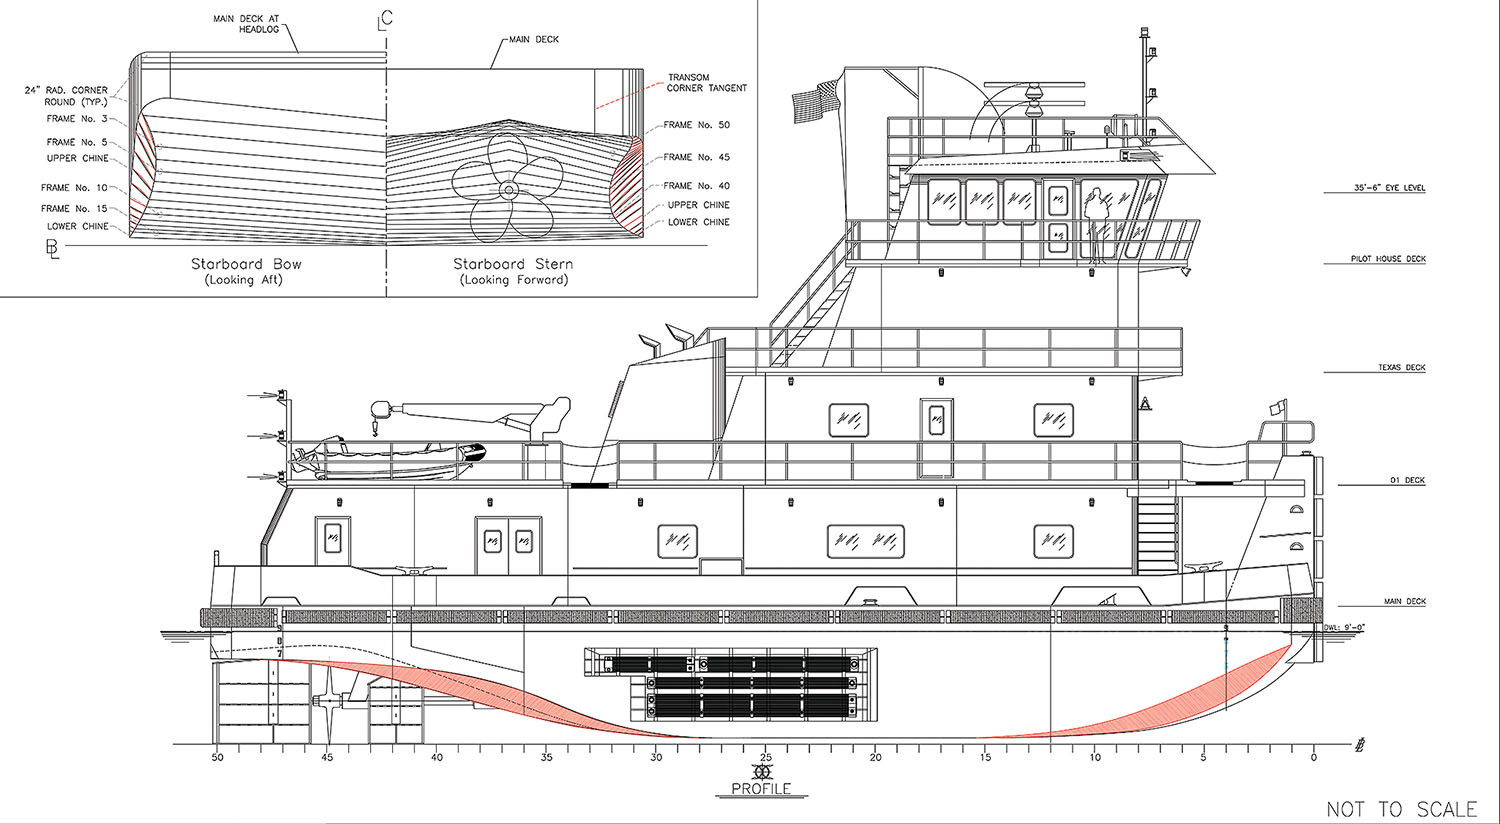 Graphic from Vessel Repair shows patented hull design.